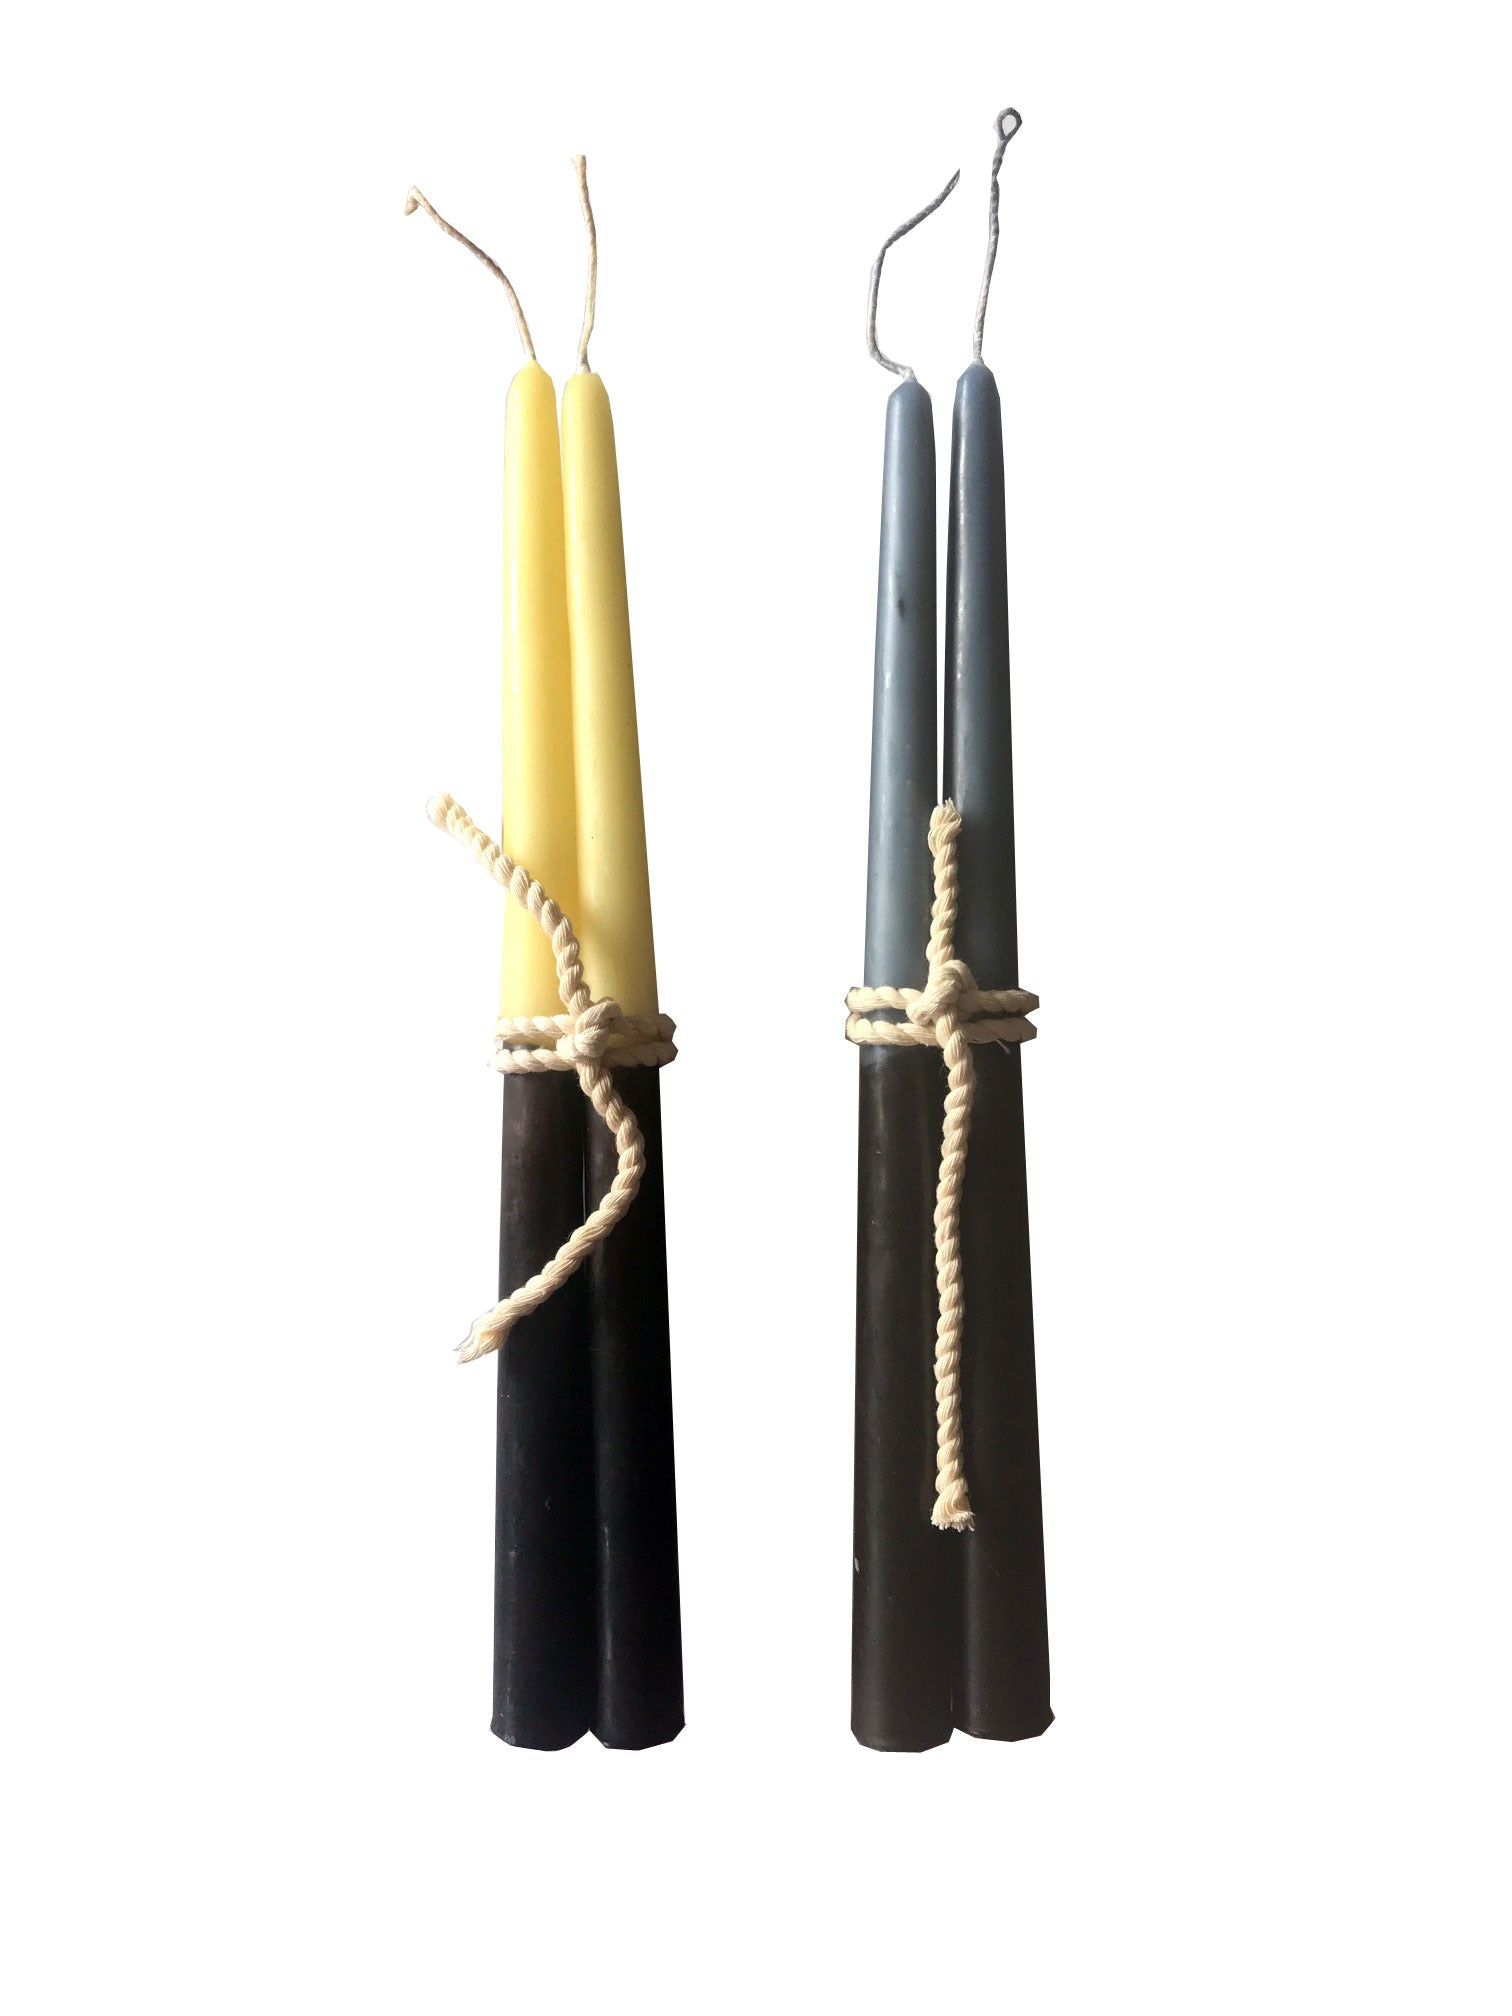 Handmade Beeswax Taper Candles